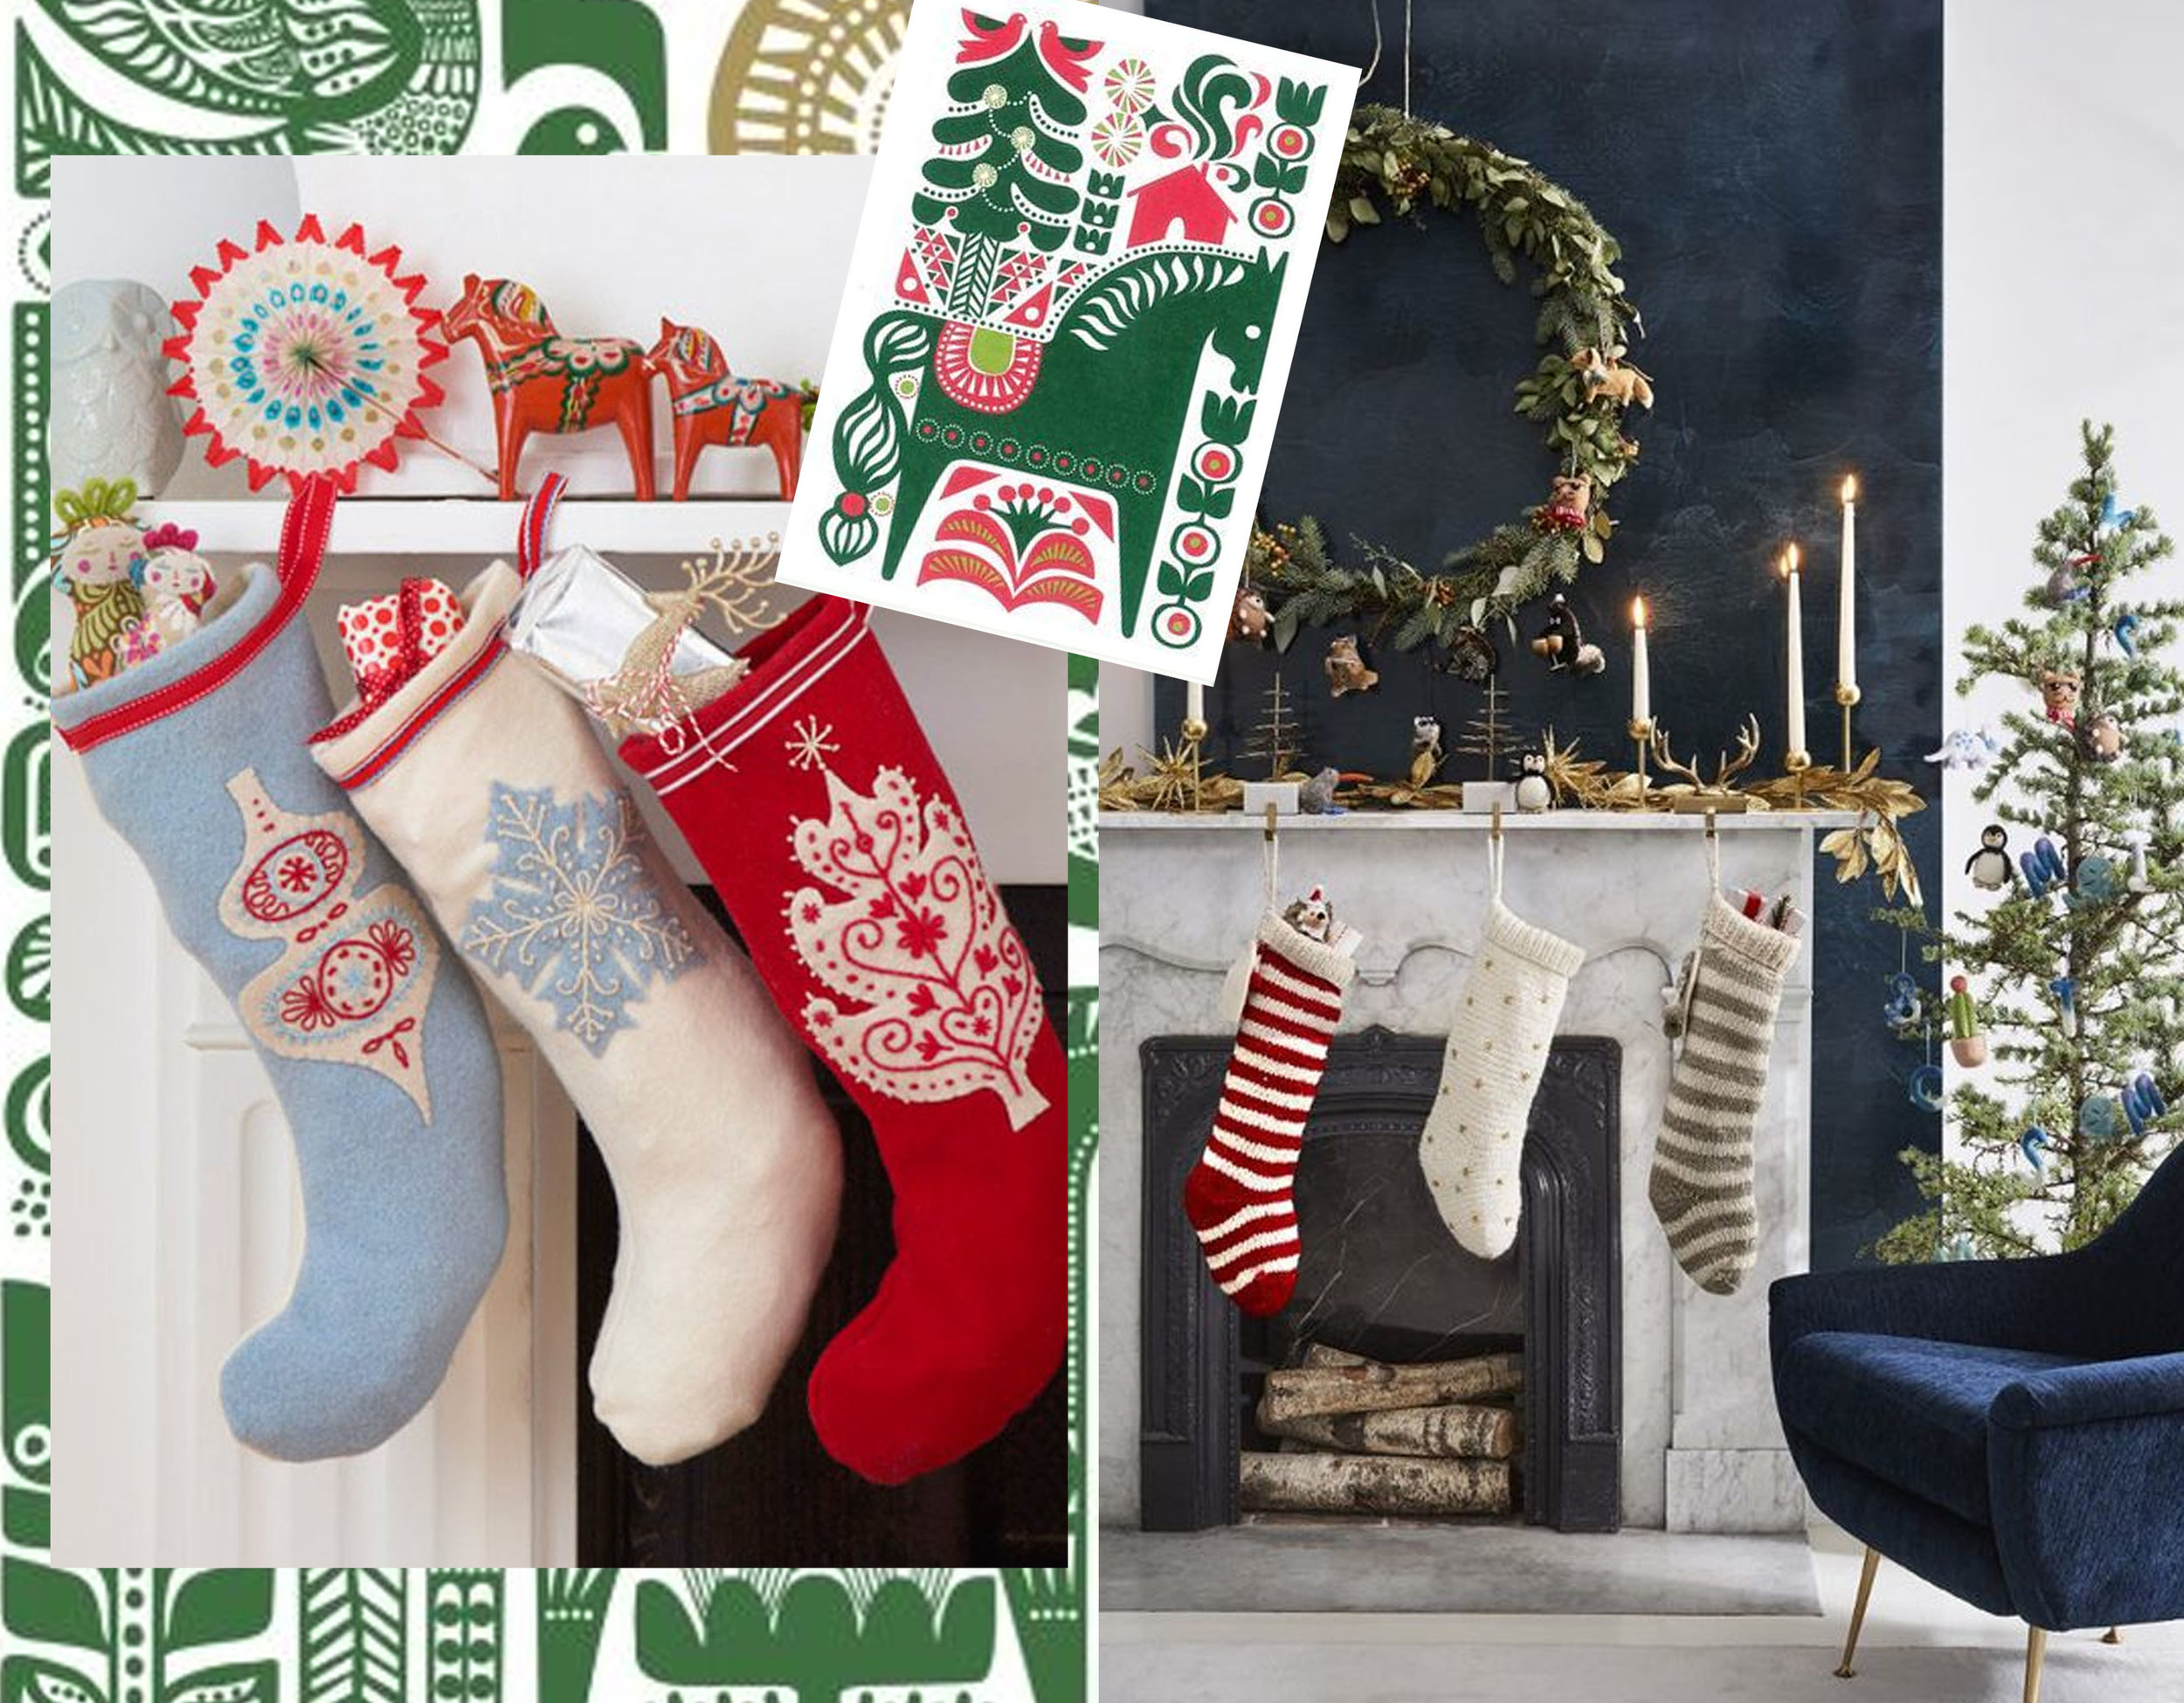 print in back Sanna Annukka via  Animalarium  - stockings via  Achica  - card Sanna annukka & Marimekko via  Windwrinkle  - fireplace via   My Domaine